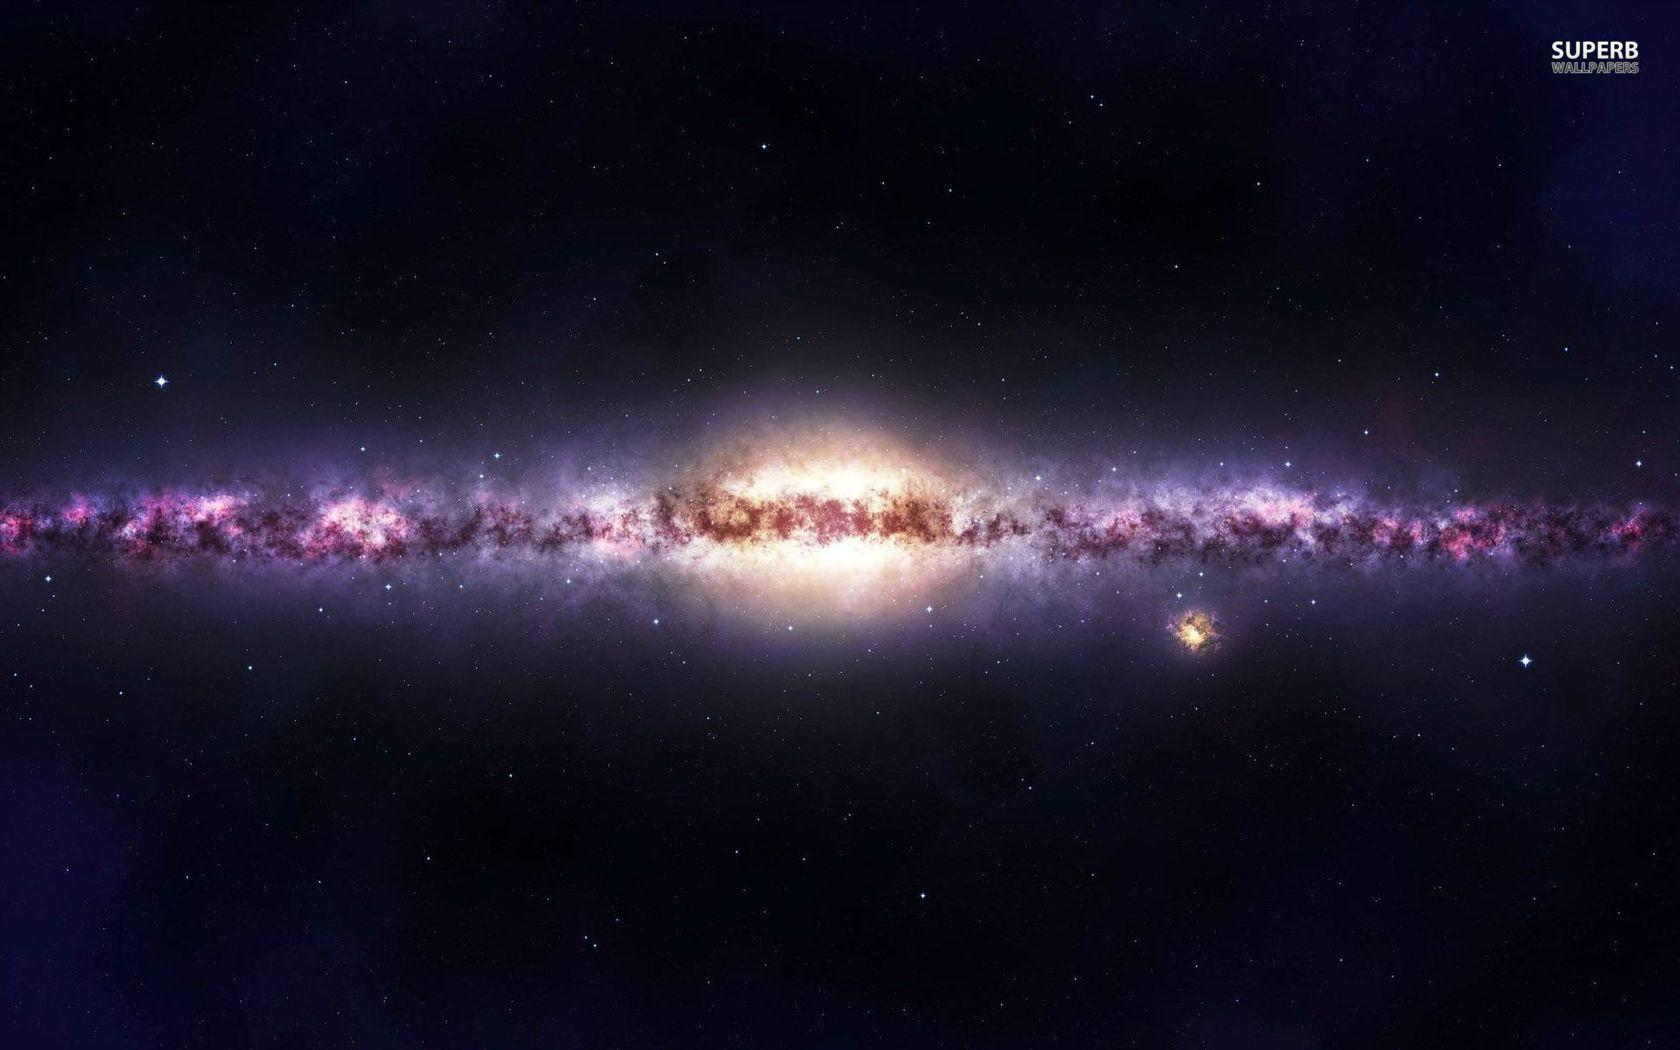 Wallpapers Milky Way Galaxy - Wallpaper Cave